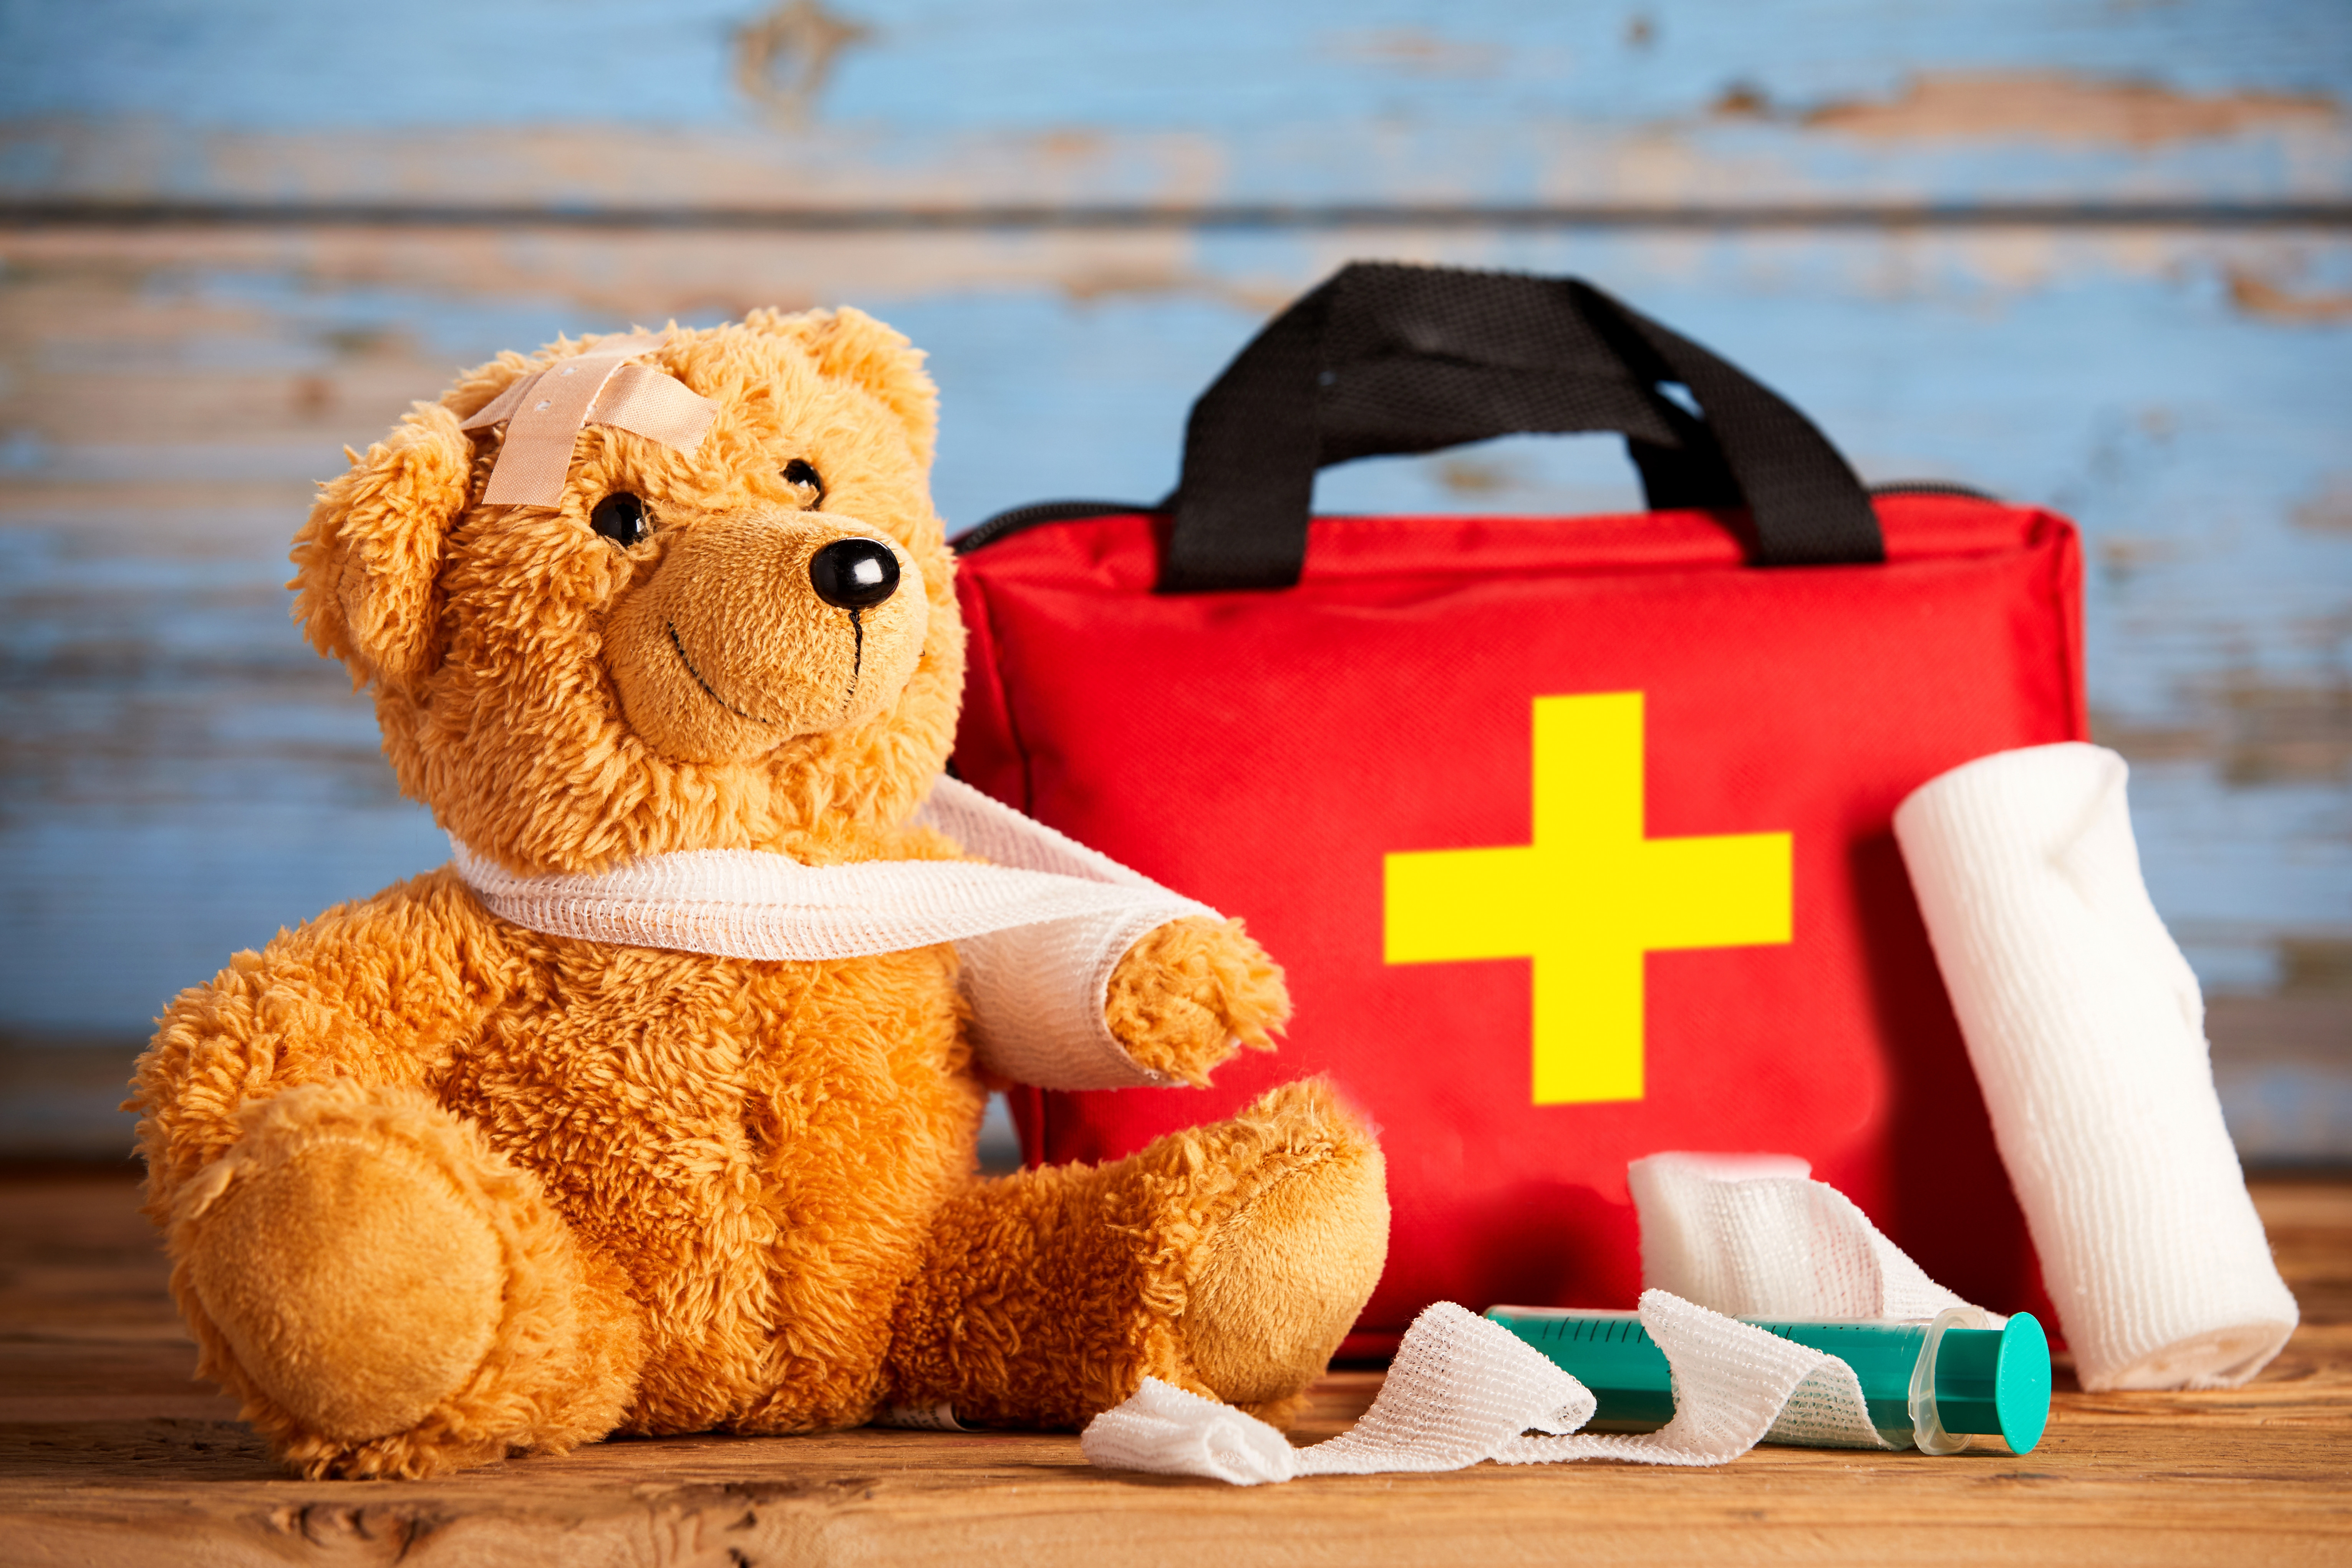 2-Day Pediatric First Aid Course